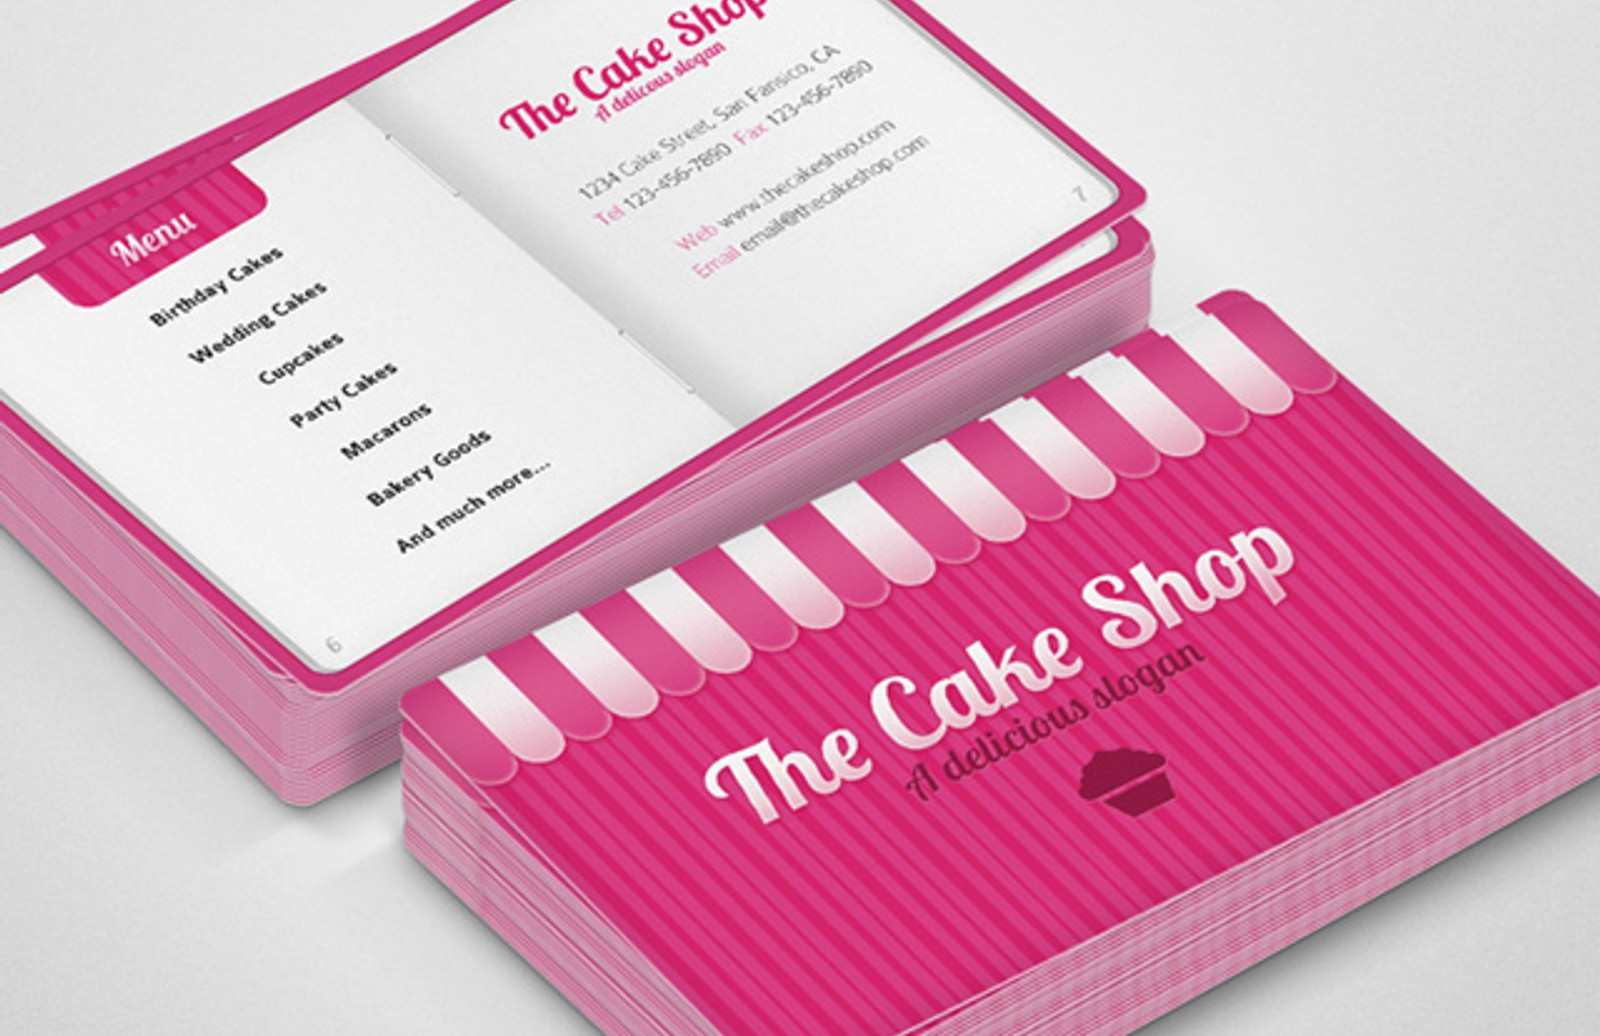 Sample Business Cards For Cakes Image collections - Card Design ...